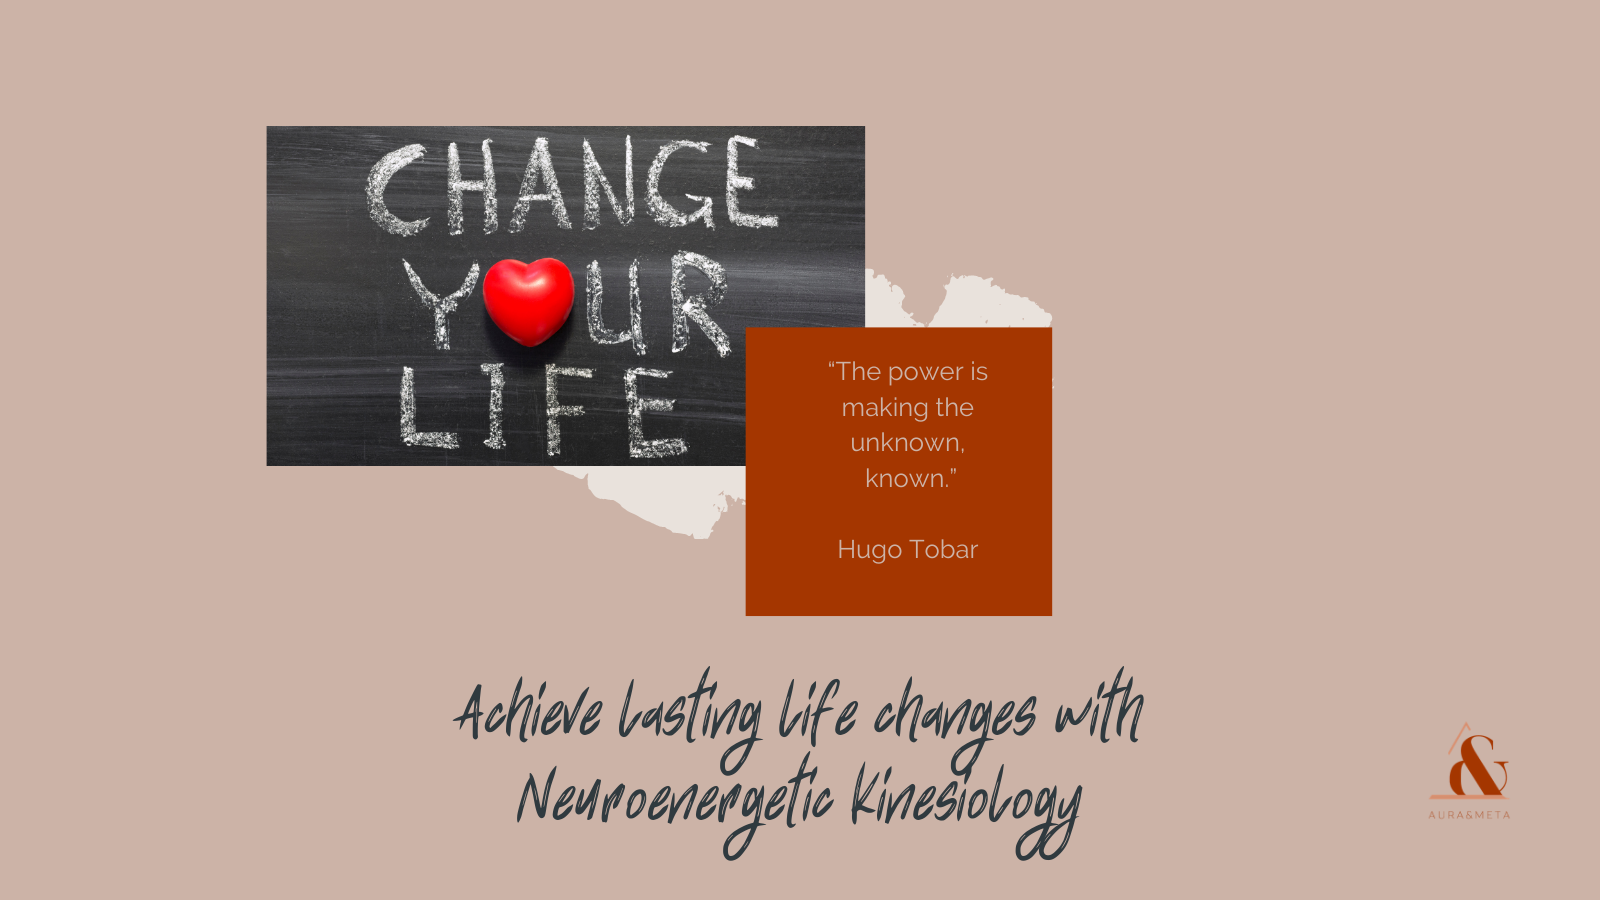 achieve lasting life changes with neuroenergetic kinesiology